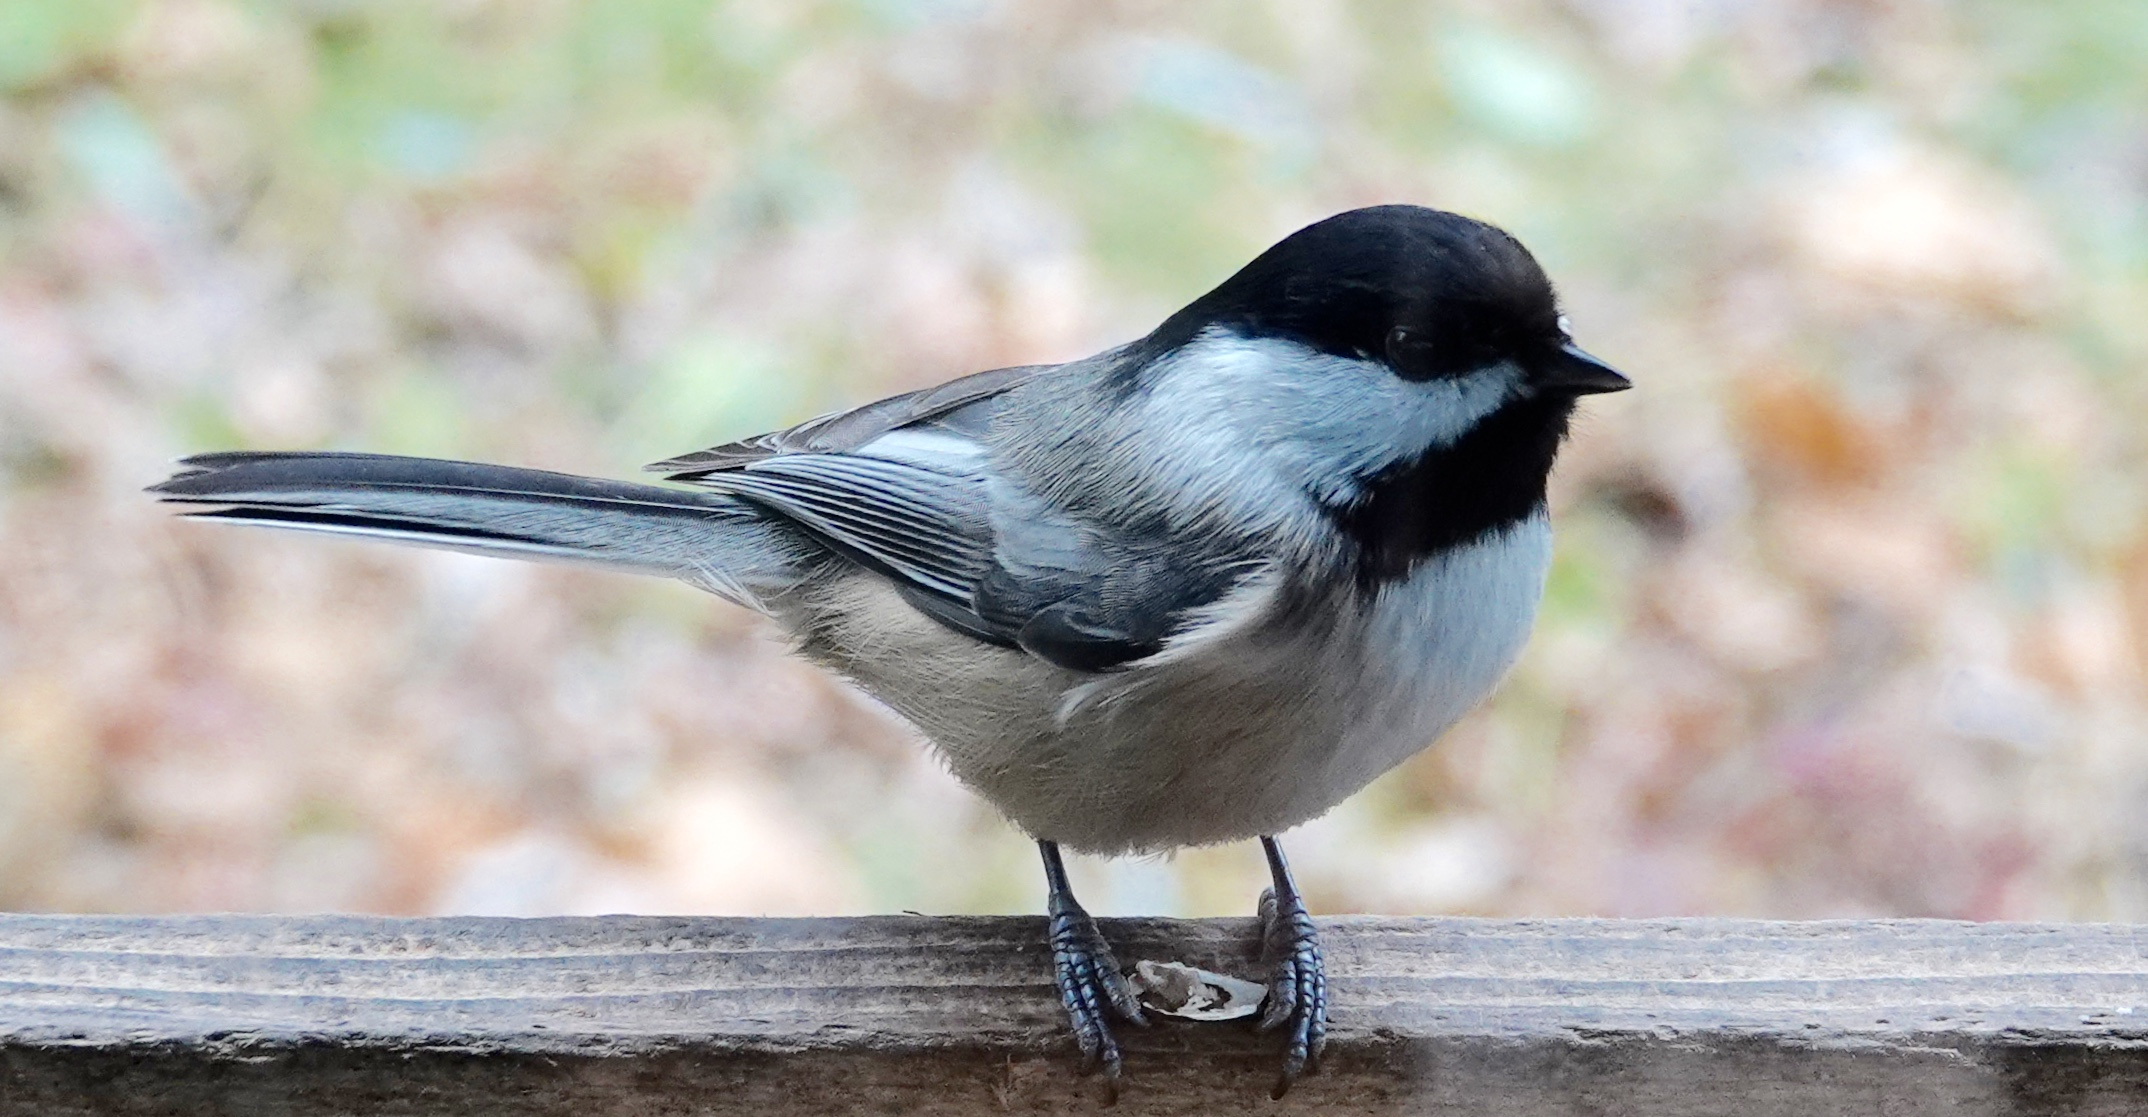 A day without a chickadee is like a day without a chickadee. I couldn't think of anything else it would be like being without.